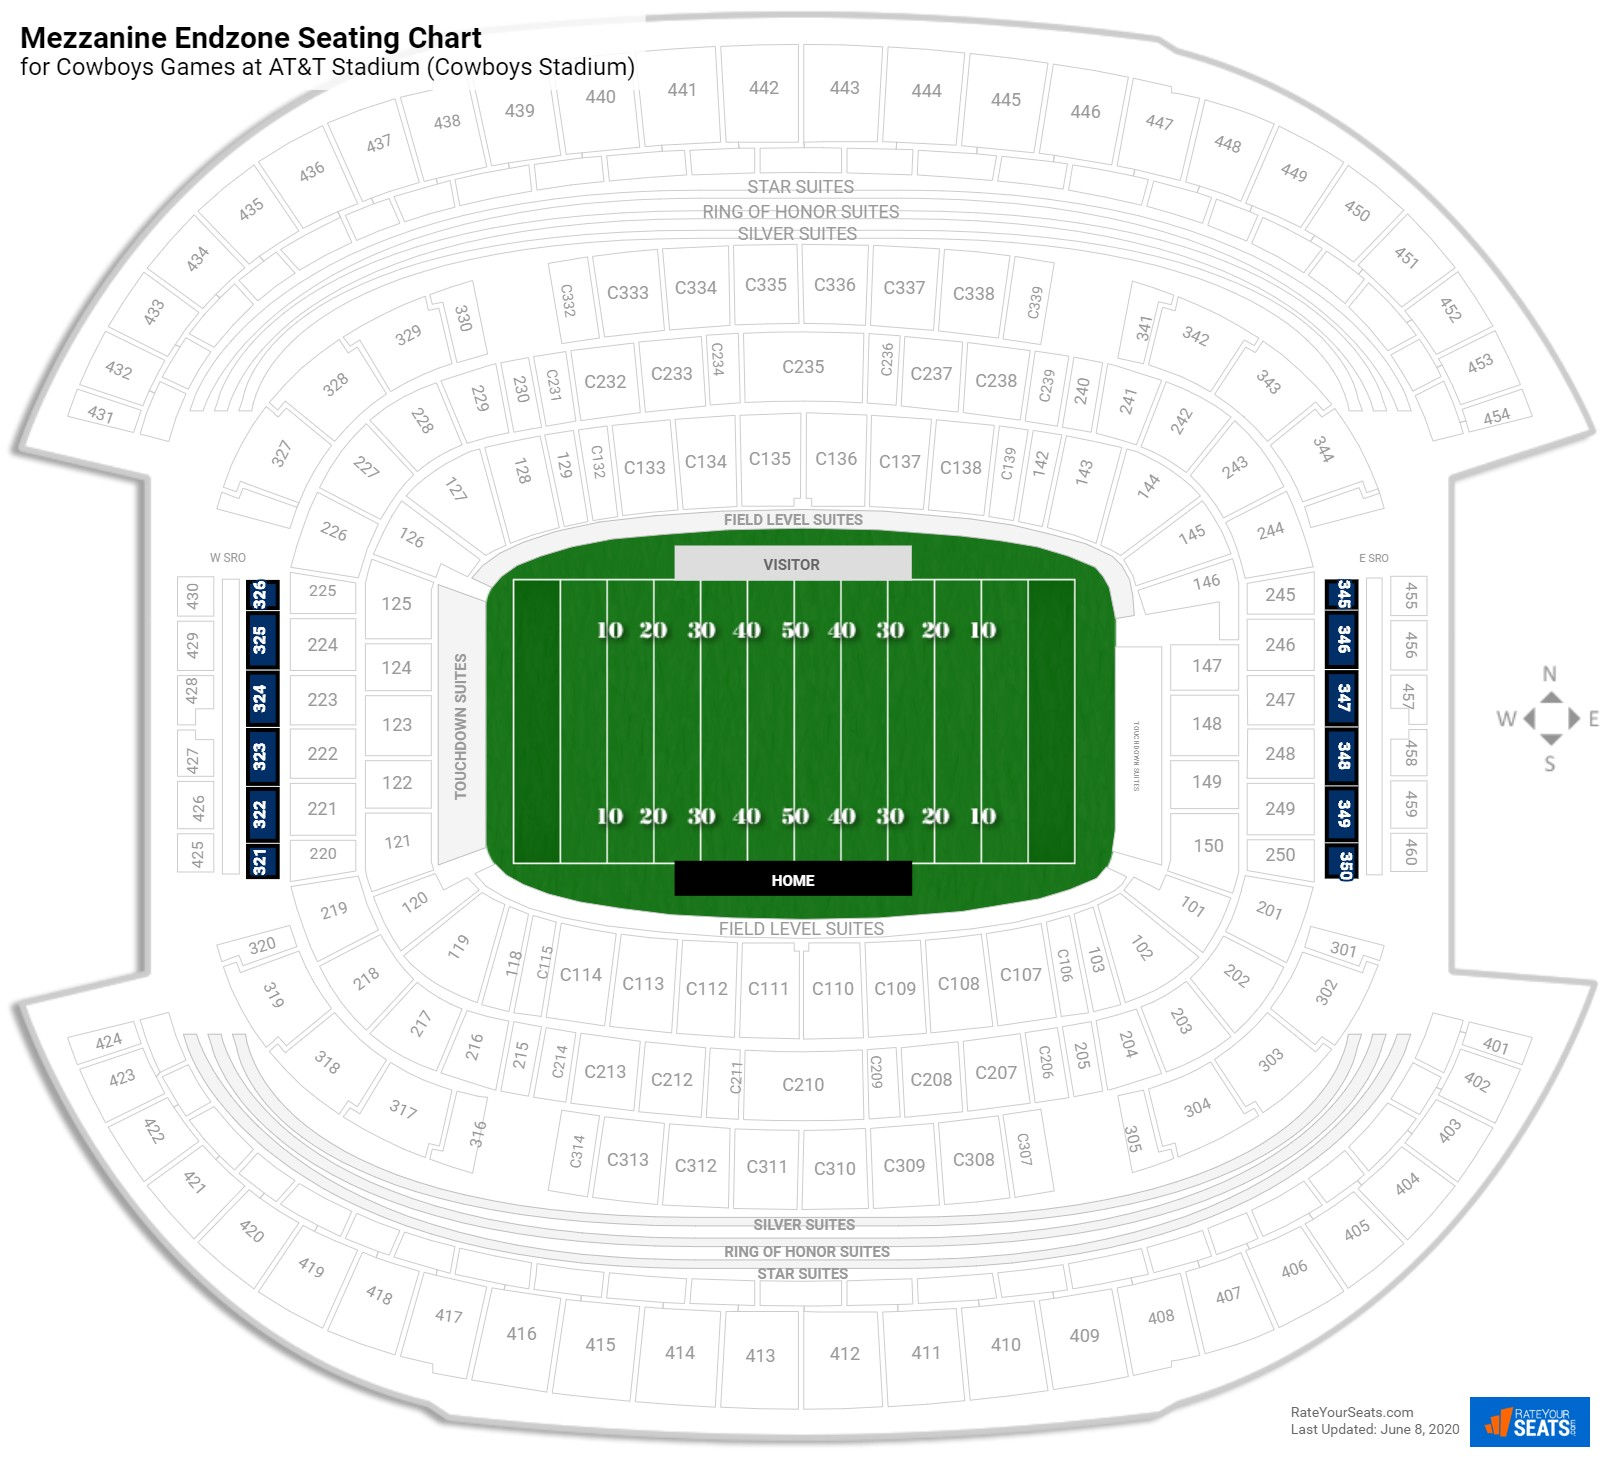 Seating prices prices on us cowboys seating chart new stadium choice